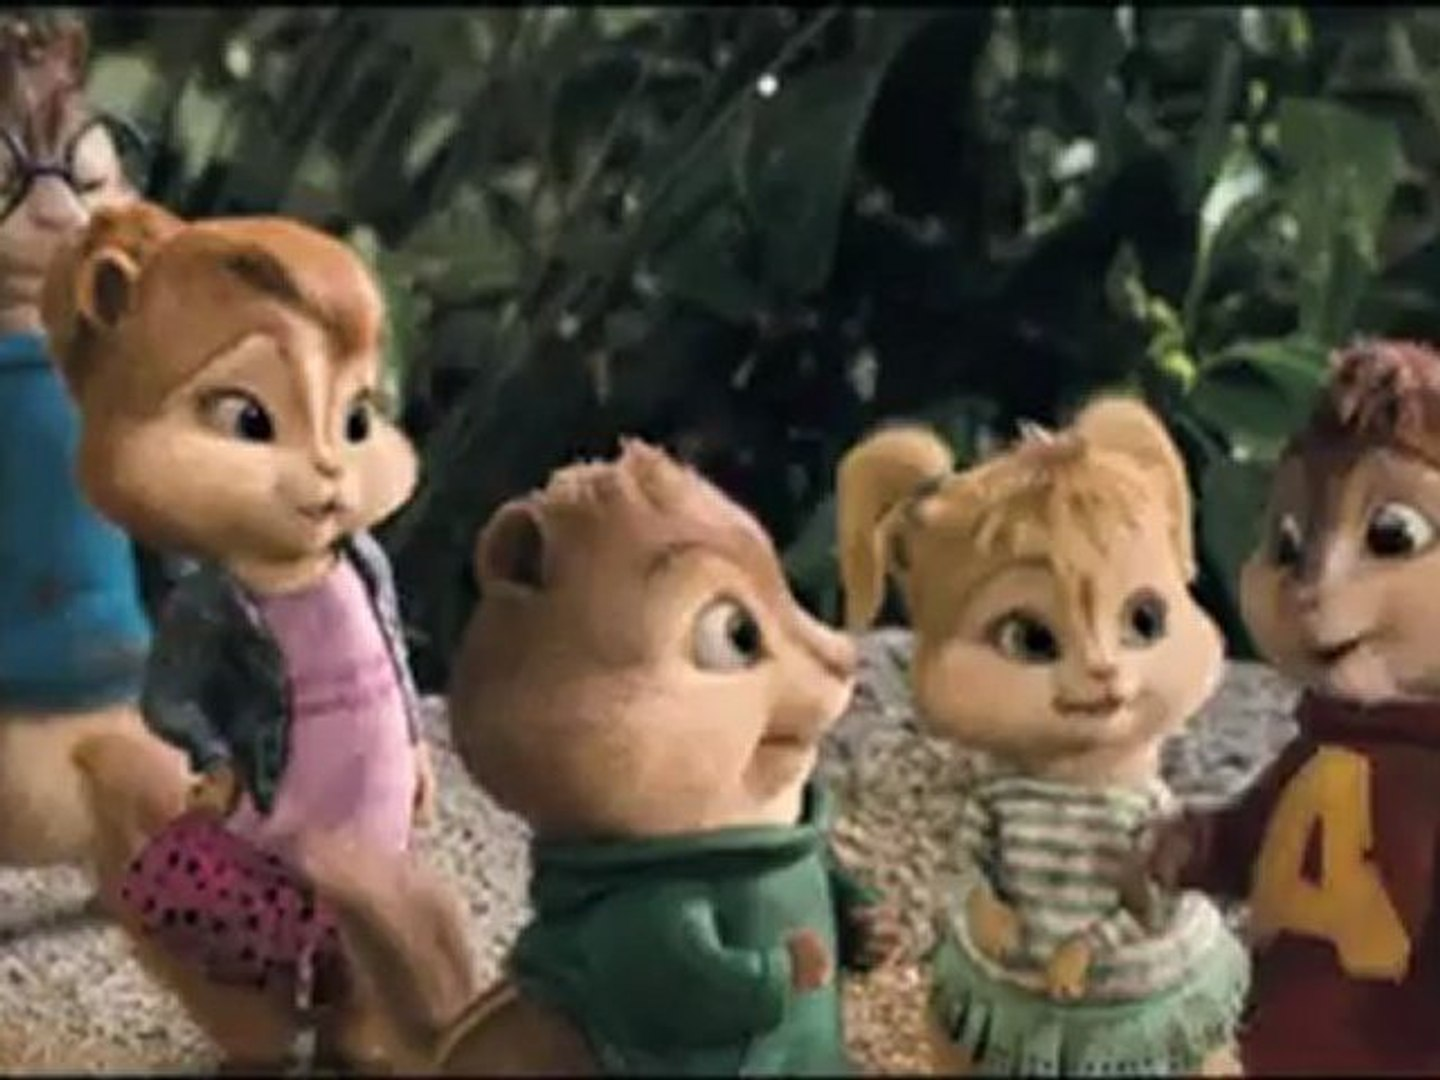 Alvin And The Chipmunks 3 Images alvin and the chipmunks: chipwrecked - trailer